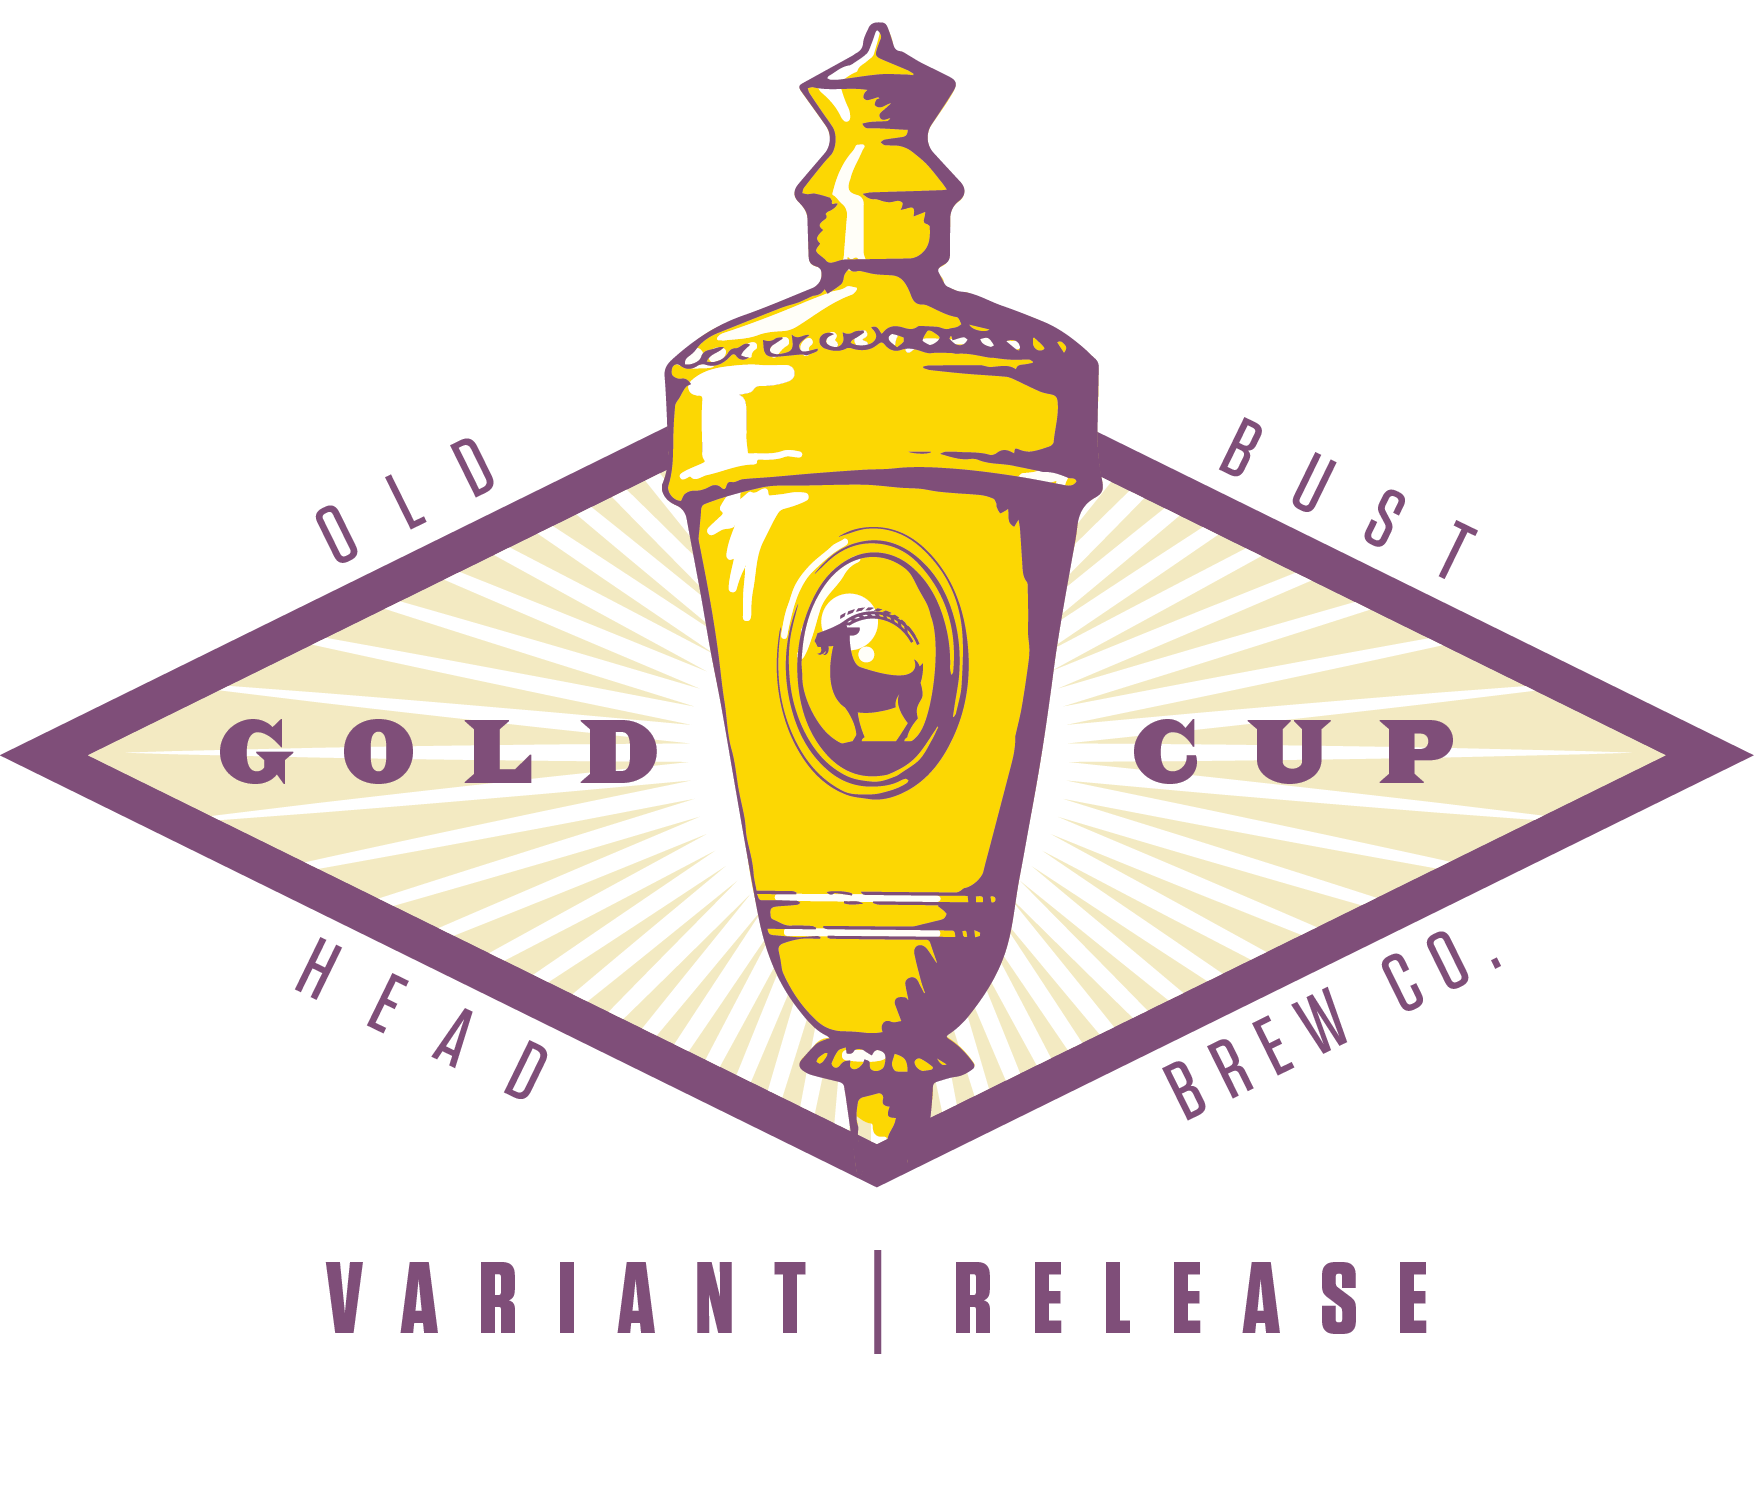 GOLD CUP VARIANT RELEASE!.